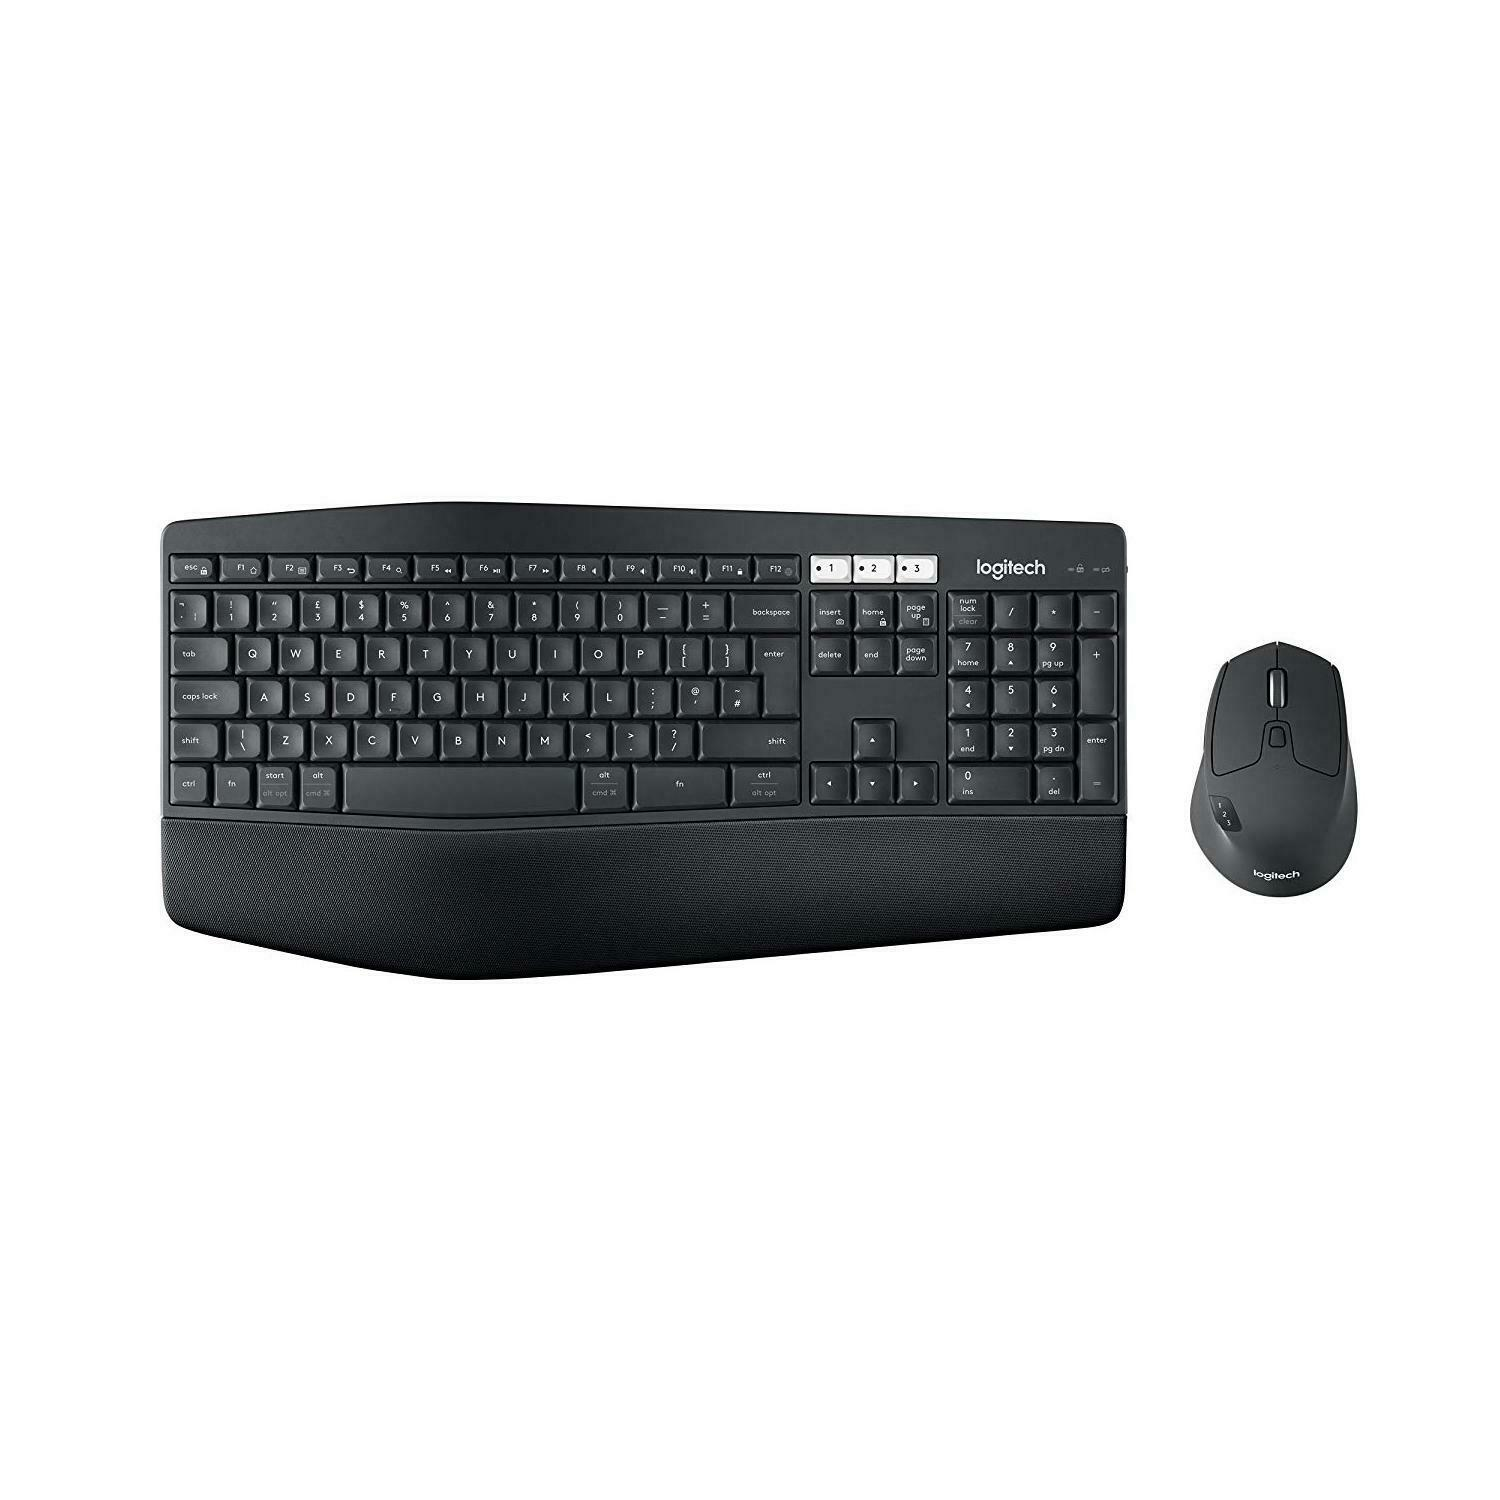 Logitech MK850 Wireless Palm Rest Keyboard and Mouse, QWERTY